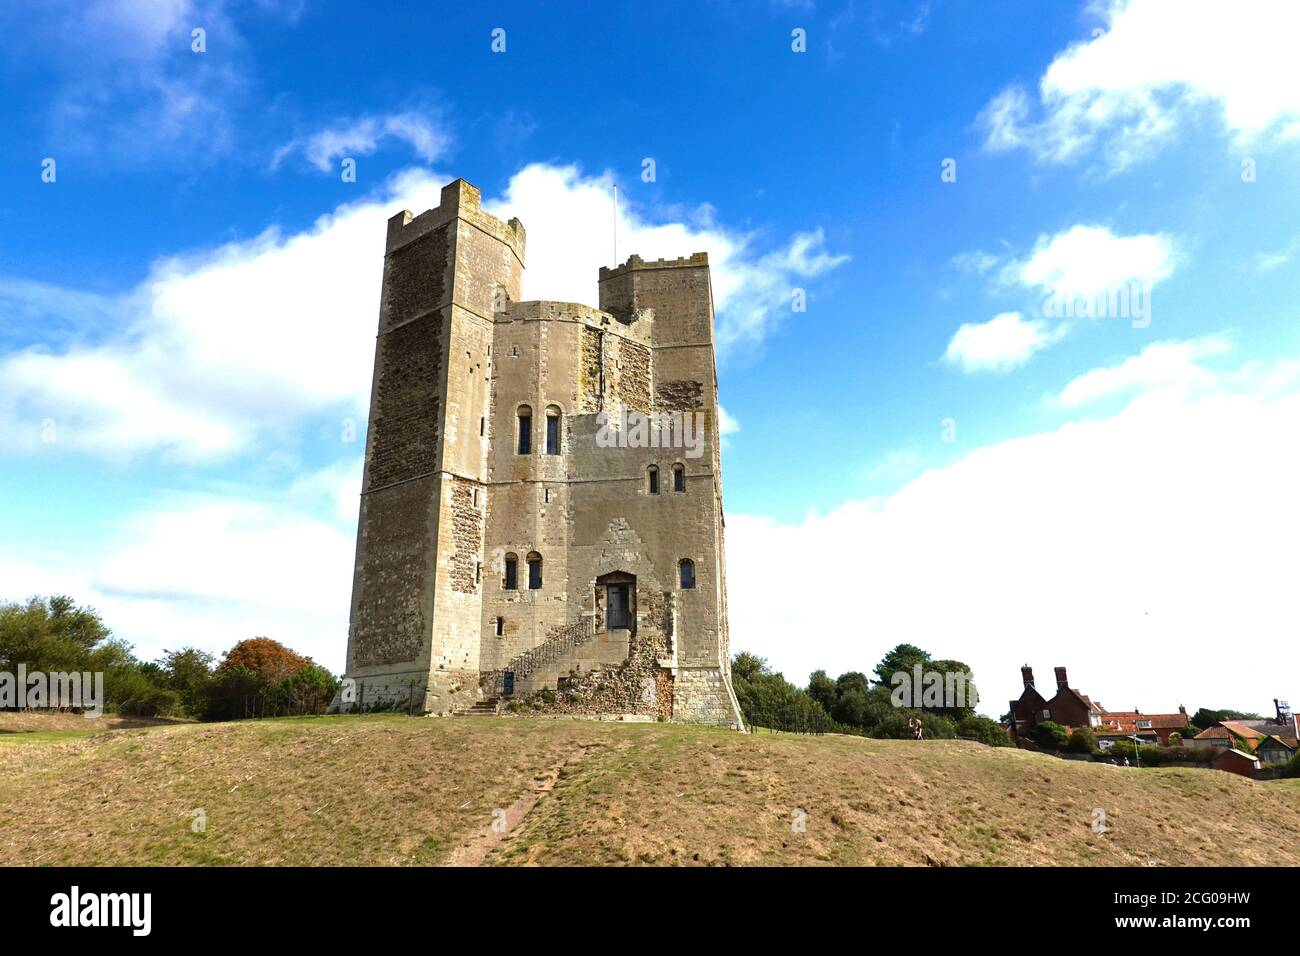 Orford, Suffolk, UK - 8 September 2020: The castle now run by English Heritage. Stock Photo